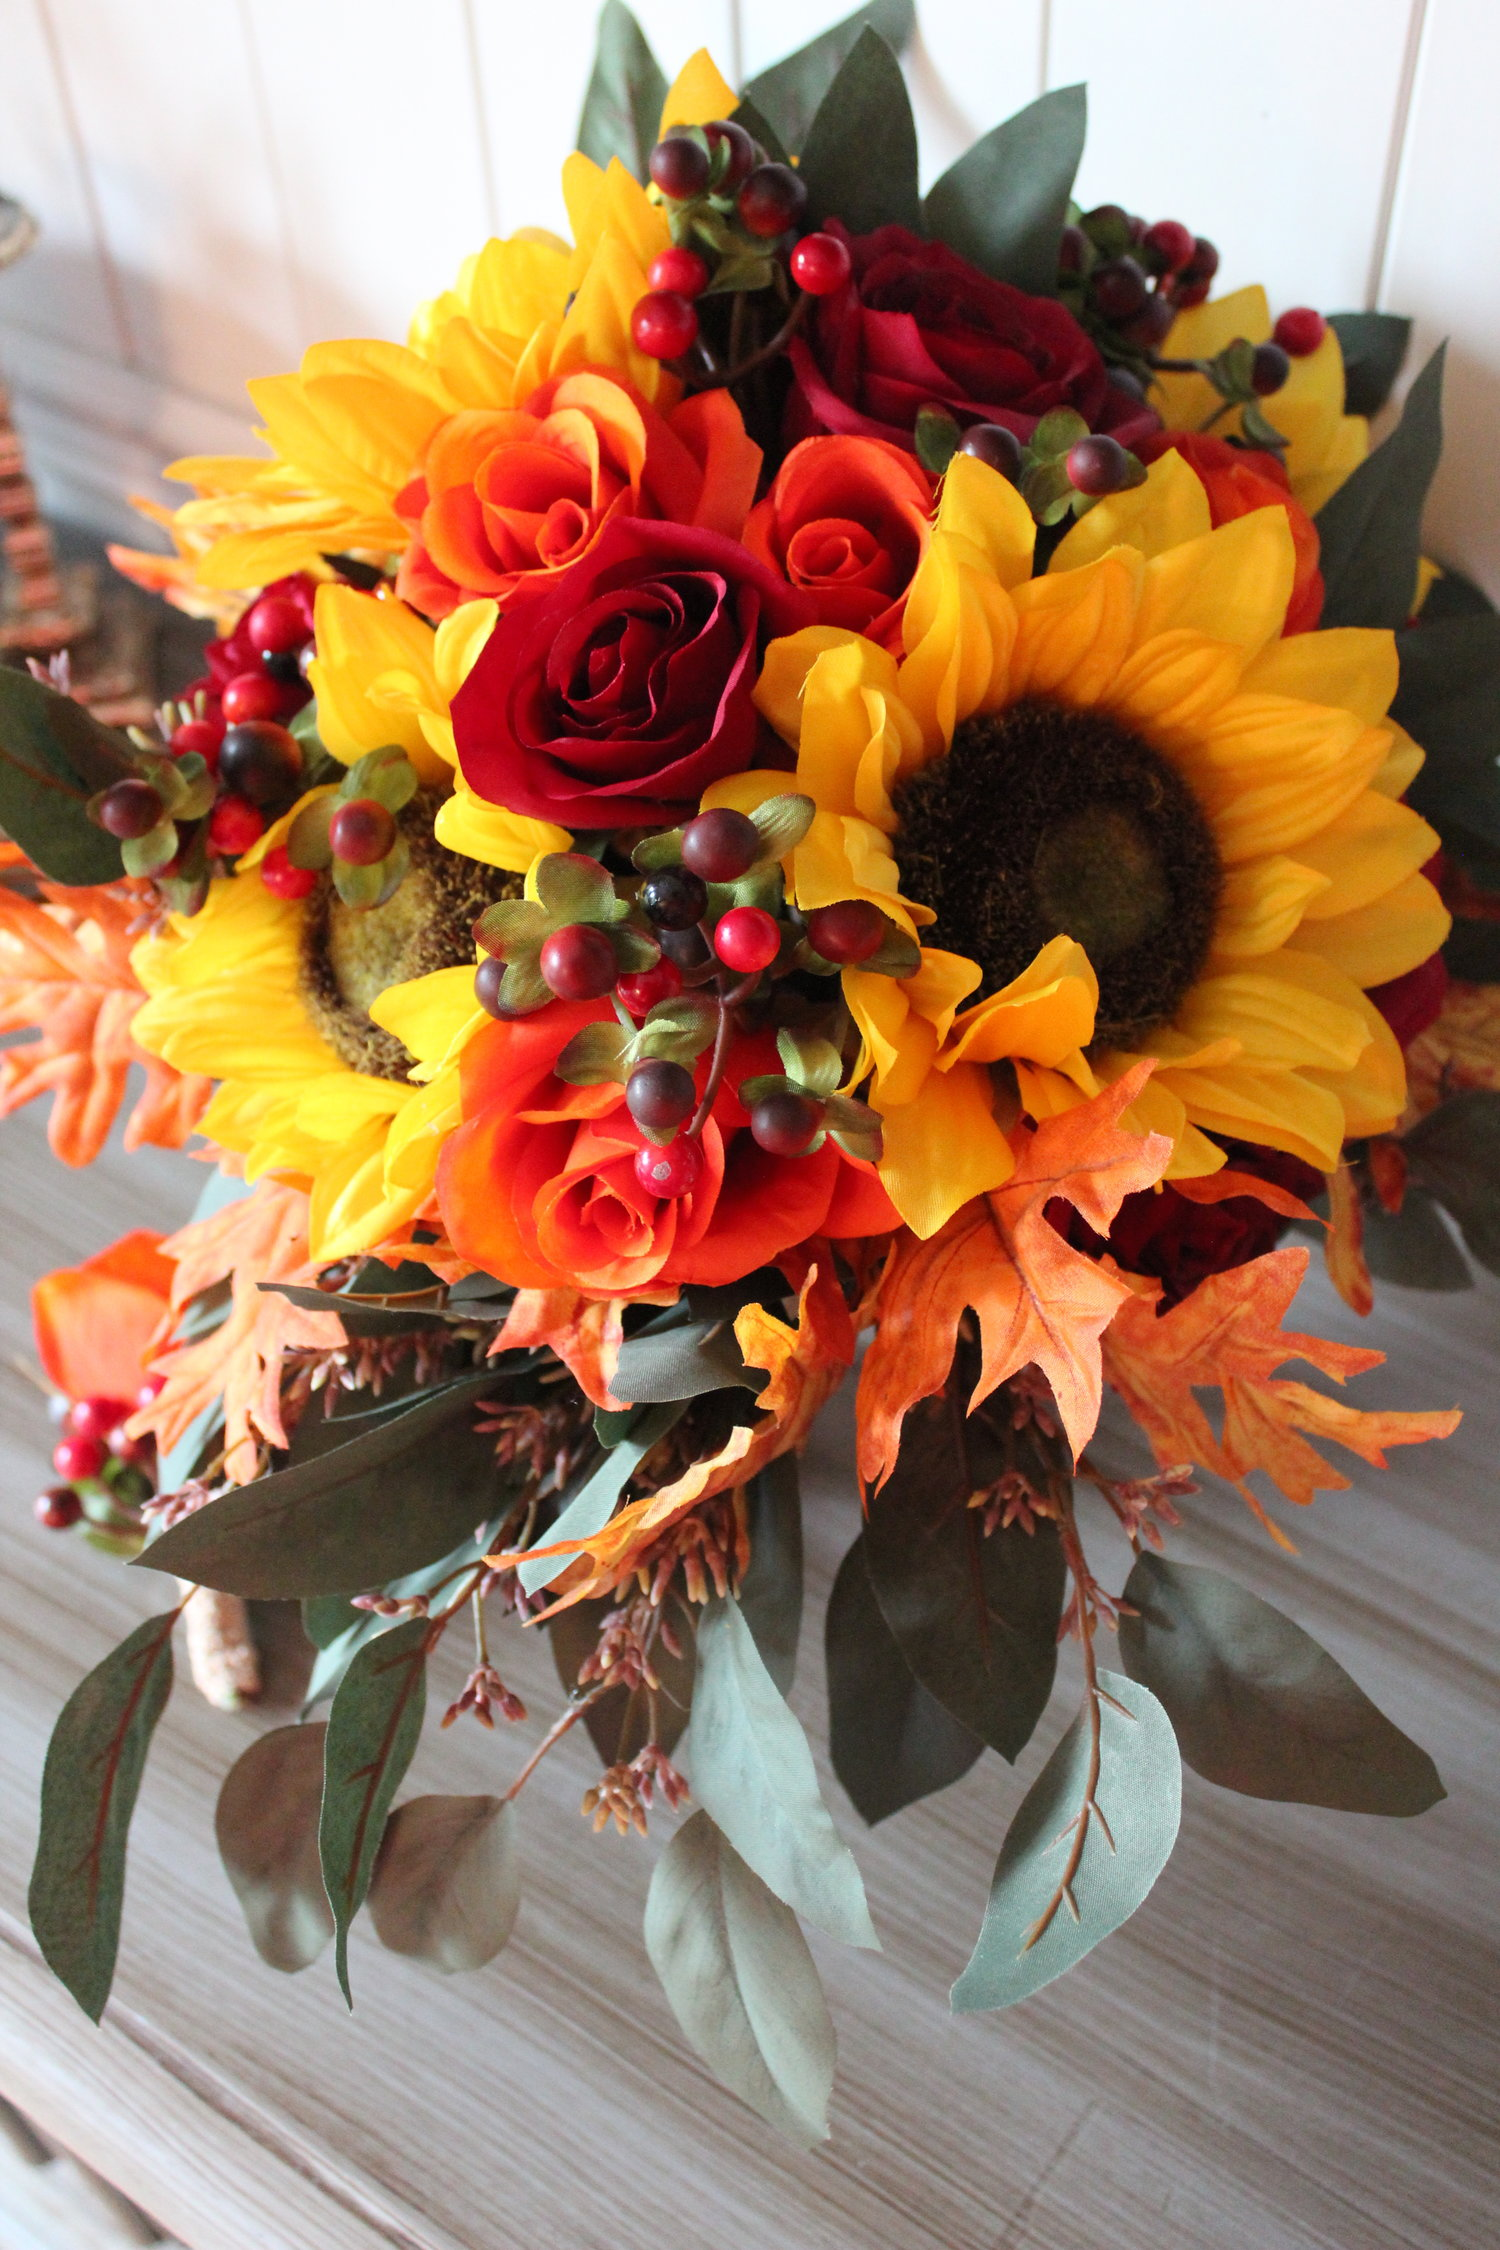 Fall Wedding Bouquet Boutonniere And Cake Topper Recreation In Silk